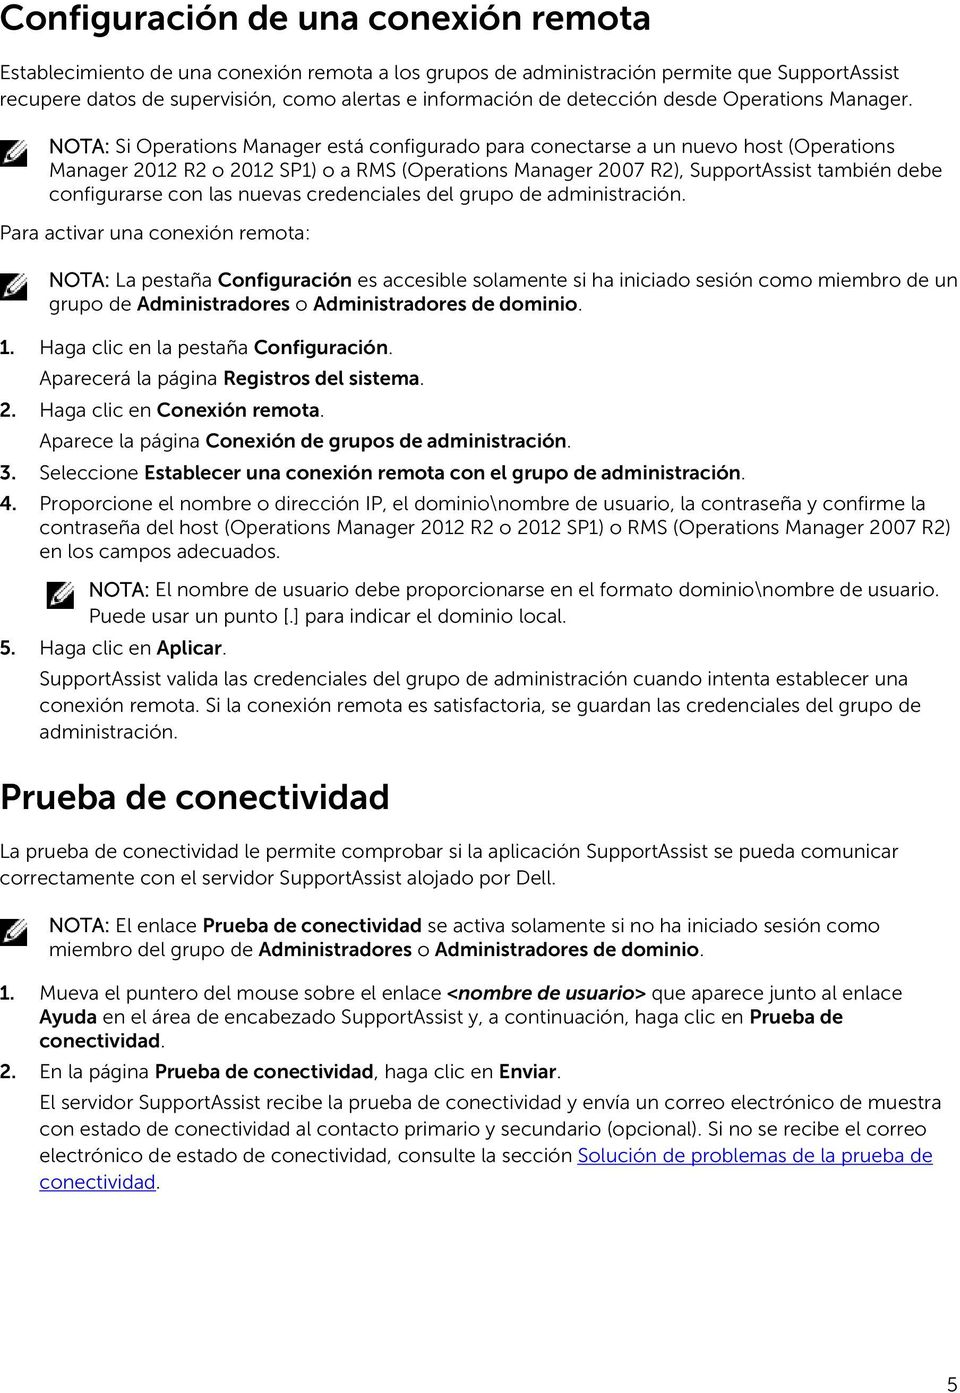 NOTA: Si Operations Manager está configurado para conectarse a un nuevo host (Operations Manager 2012 R2 o 2012 SP1) o a RMS (Operations Manager 2007 R2), SupportAssist también debe configurarse con